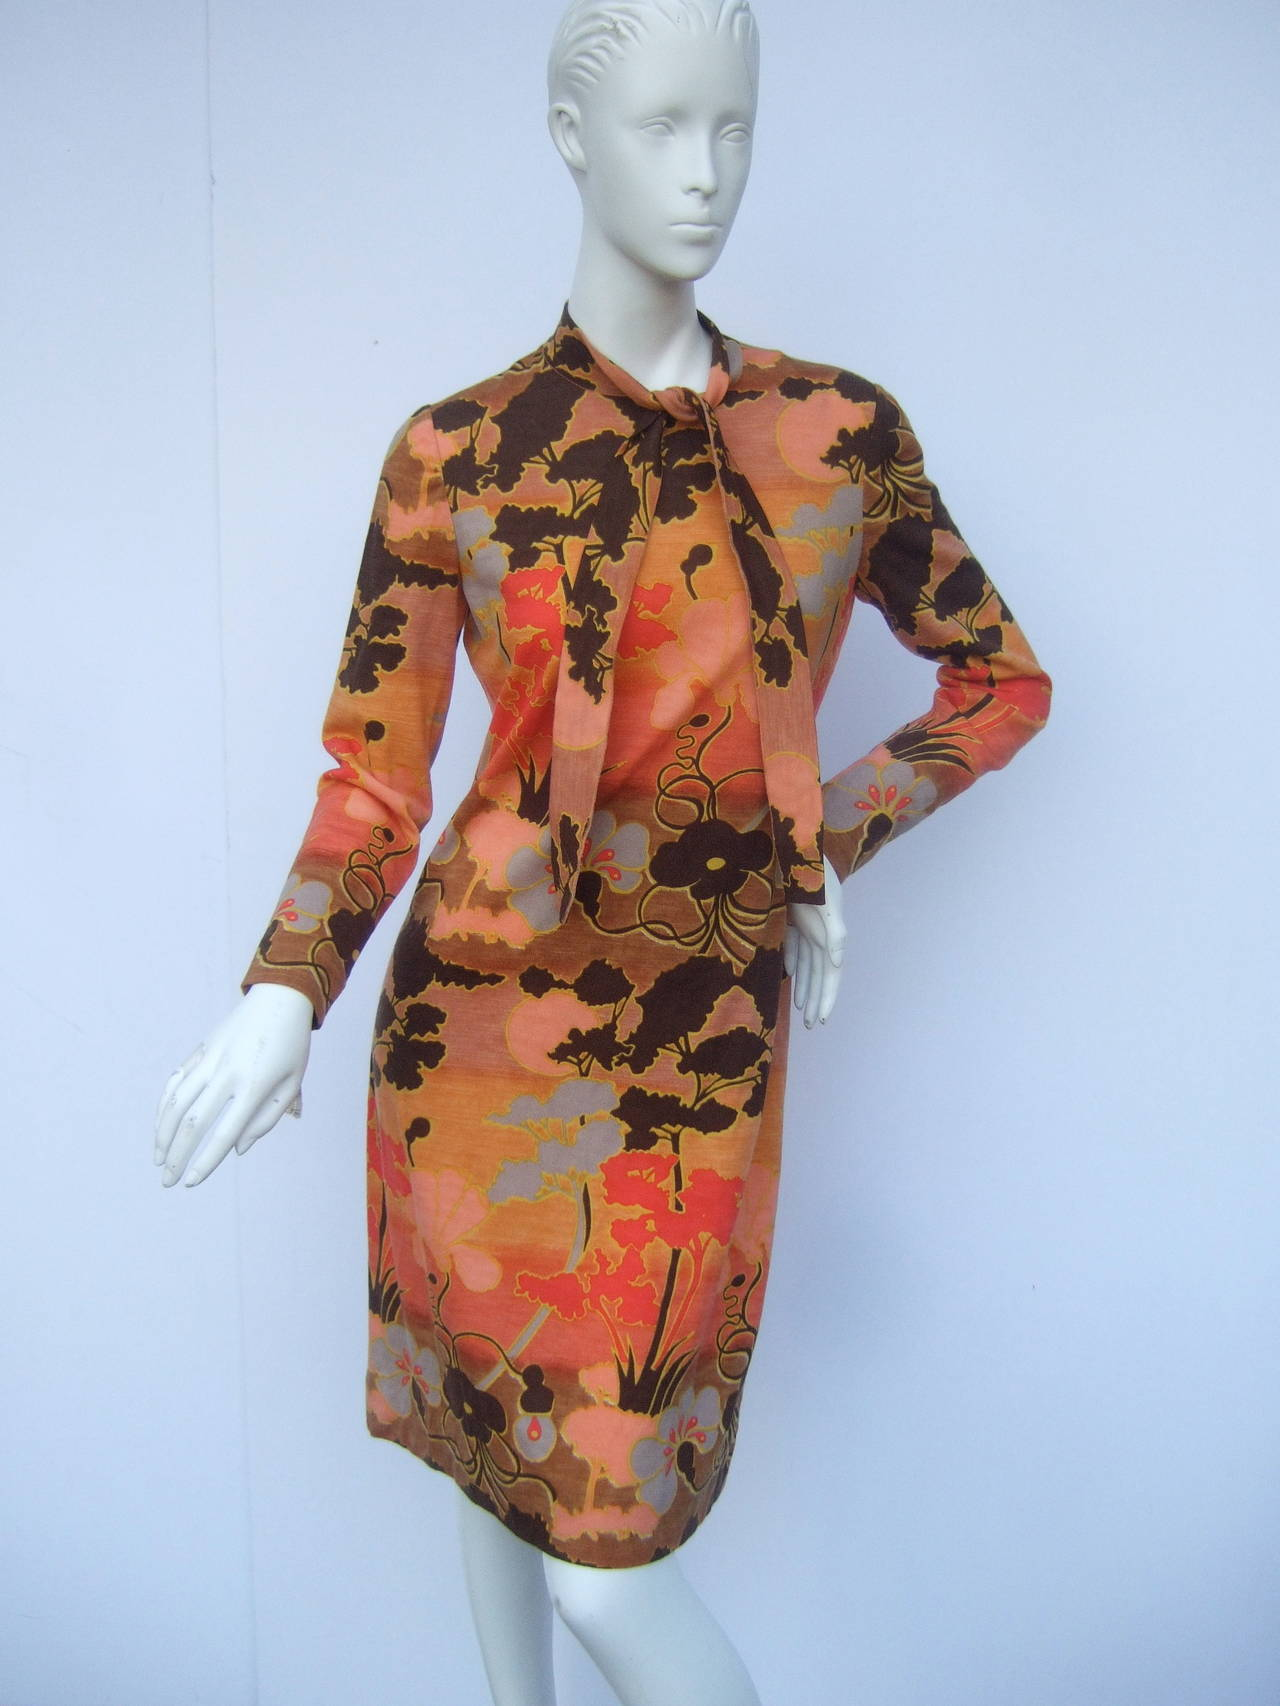 Italian floral print merino wool knit dress designed by Goldworm US Size 8 The vibrant floral print dress is a field of earth tone hues from burnt orange to rich brown colors. The sinuous floral graphics are illustrated throughout the bold merino